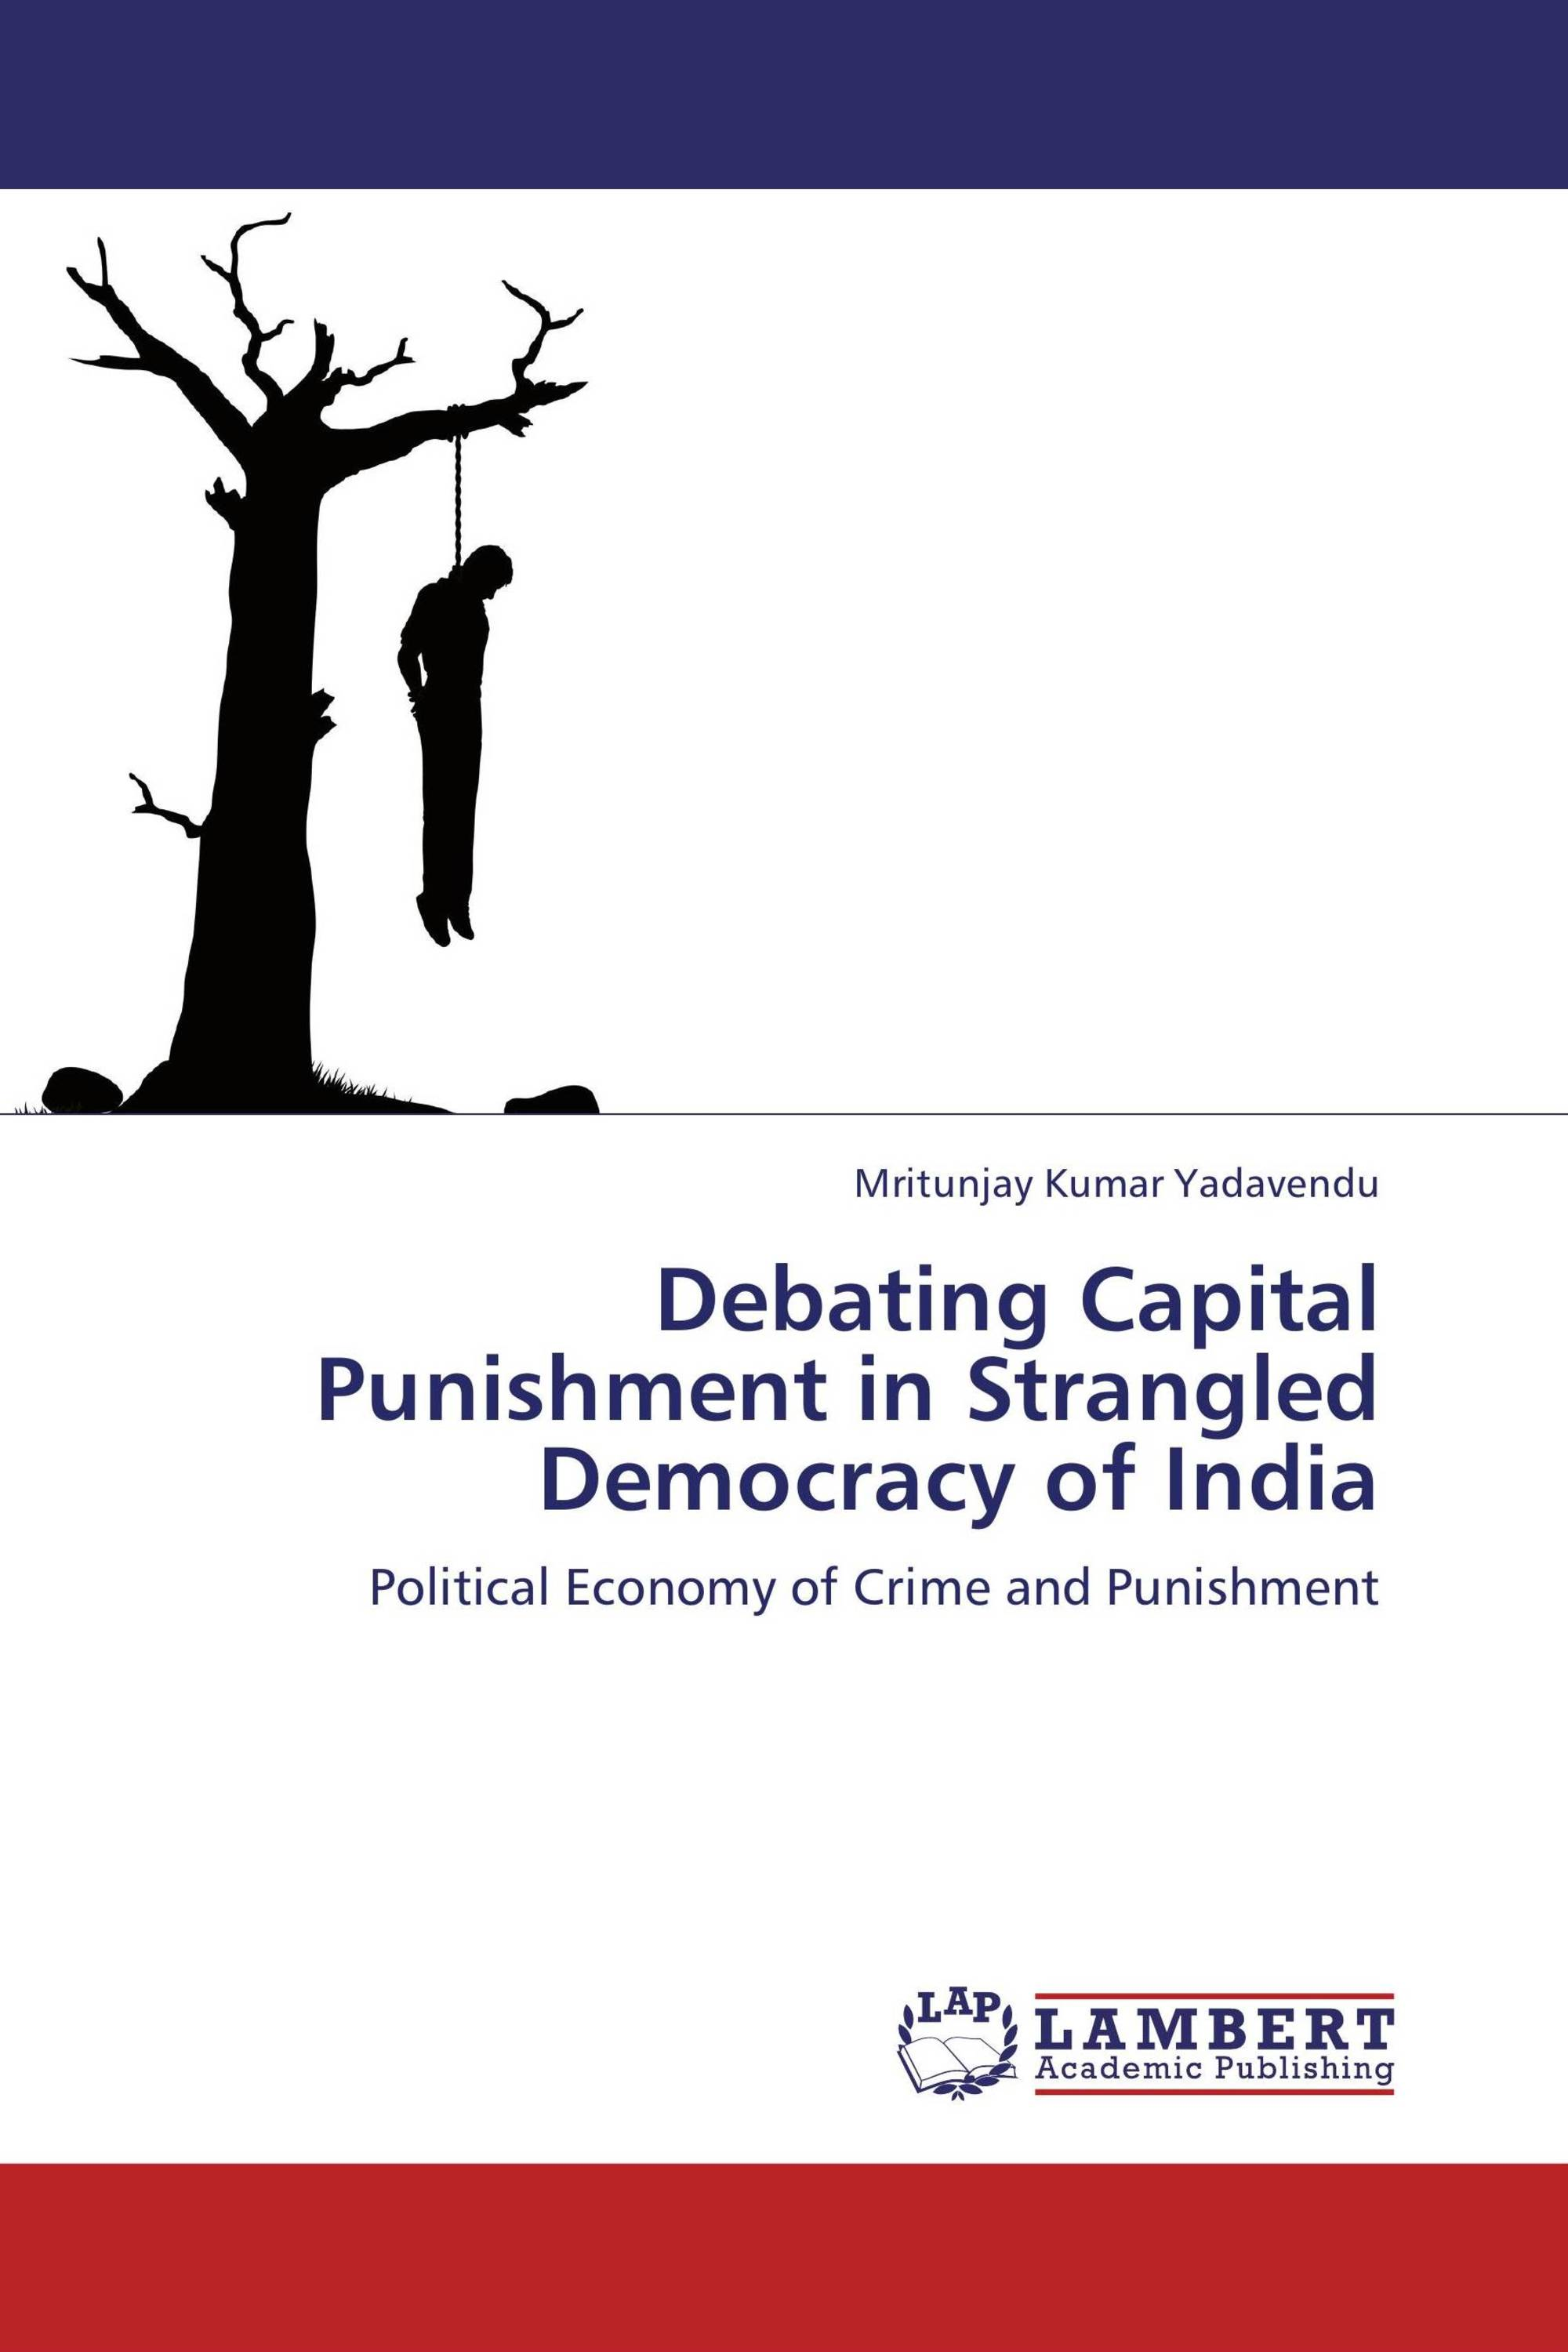 the views of abolitionists and retentionists regarding capital punishment